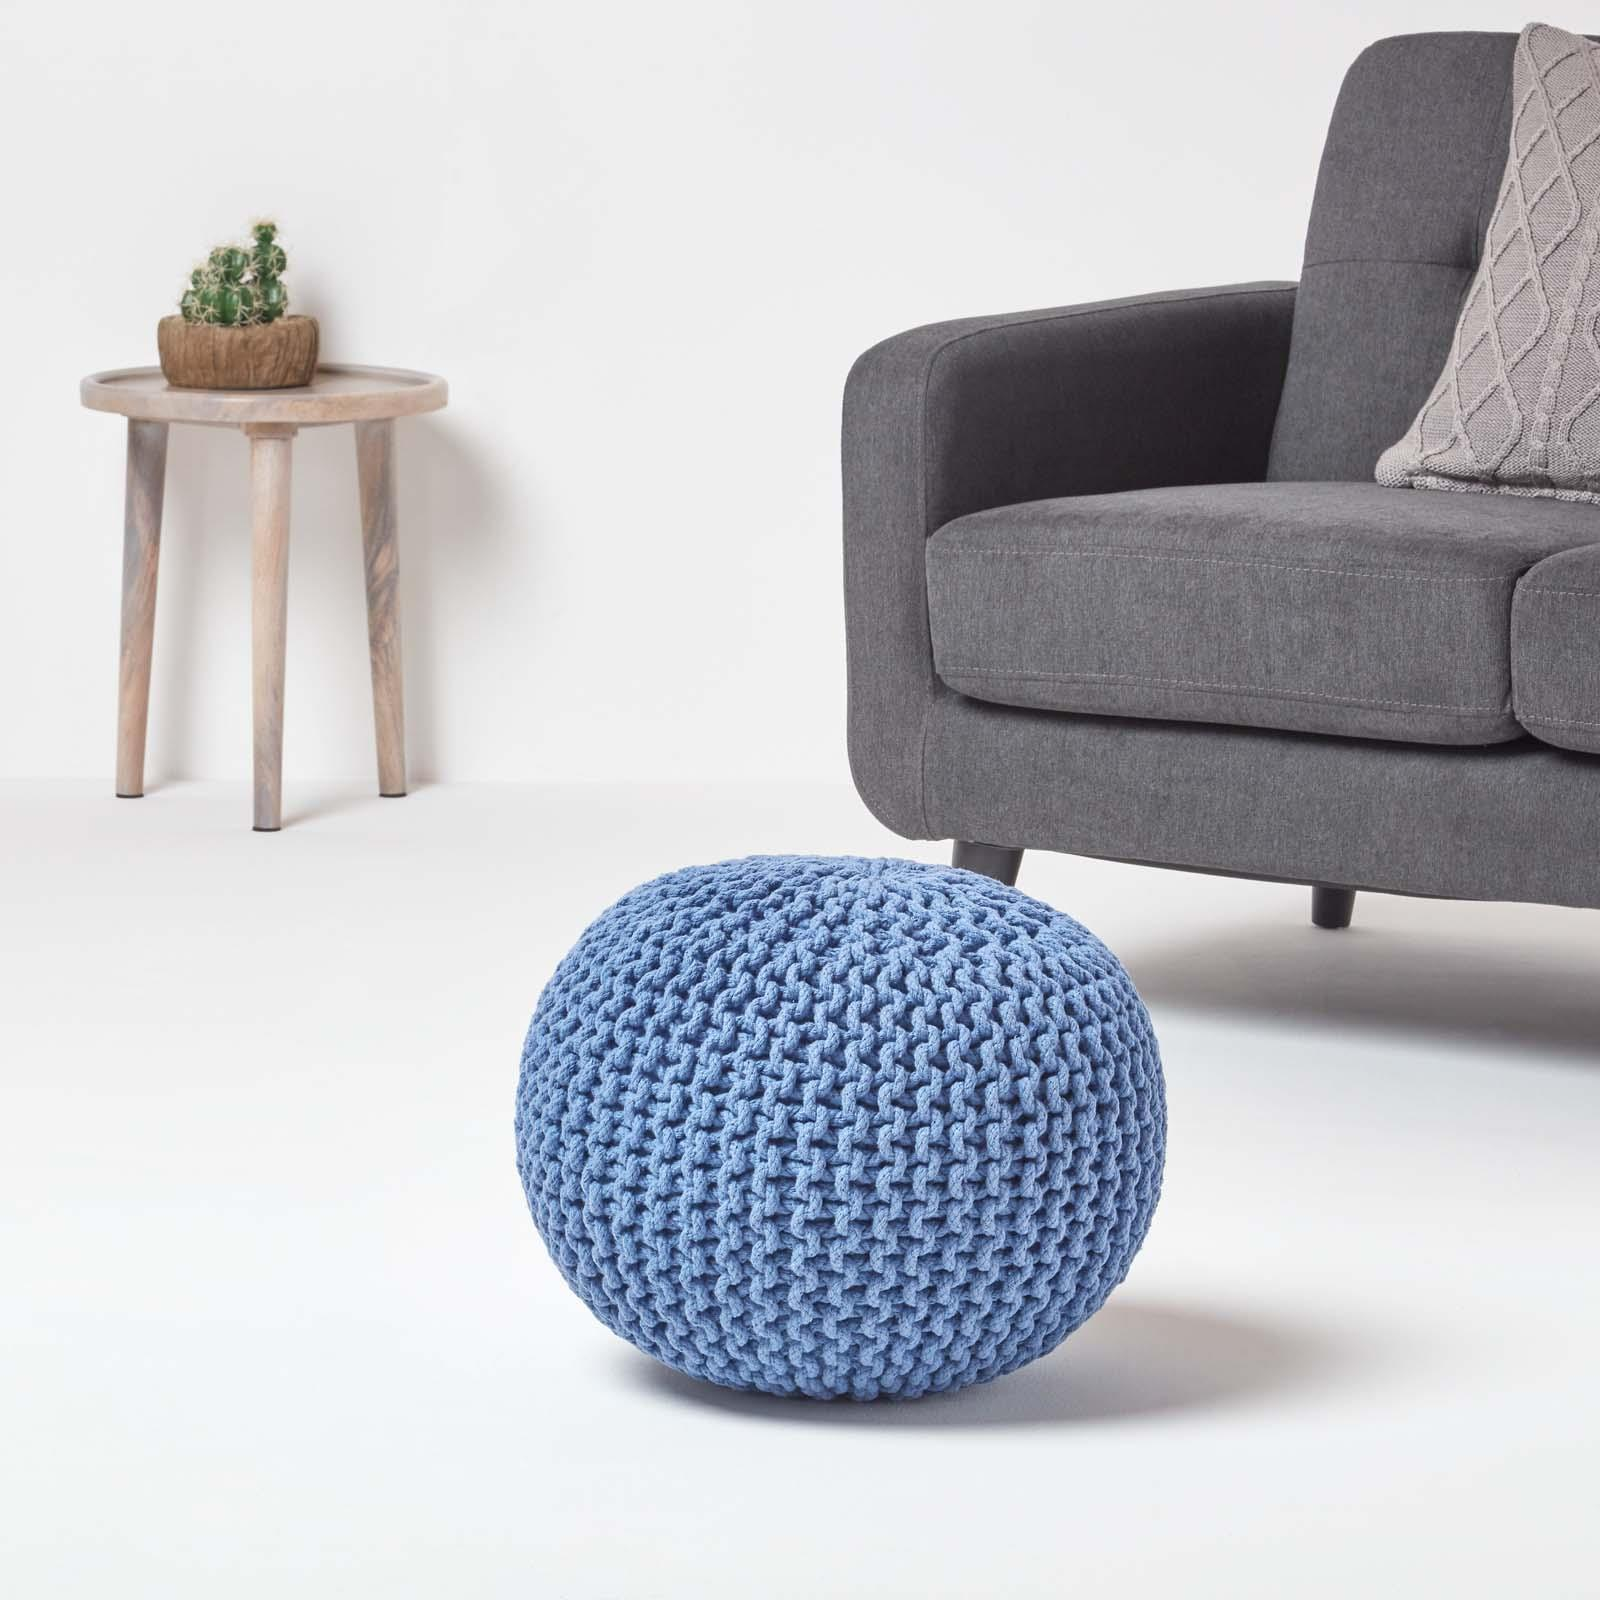 Hand-Knitted-100-Cotton-Pouffes-Round-Sphere-Or-Cube-Square-Chunky-Footstools thumbnail 17